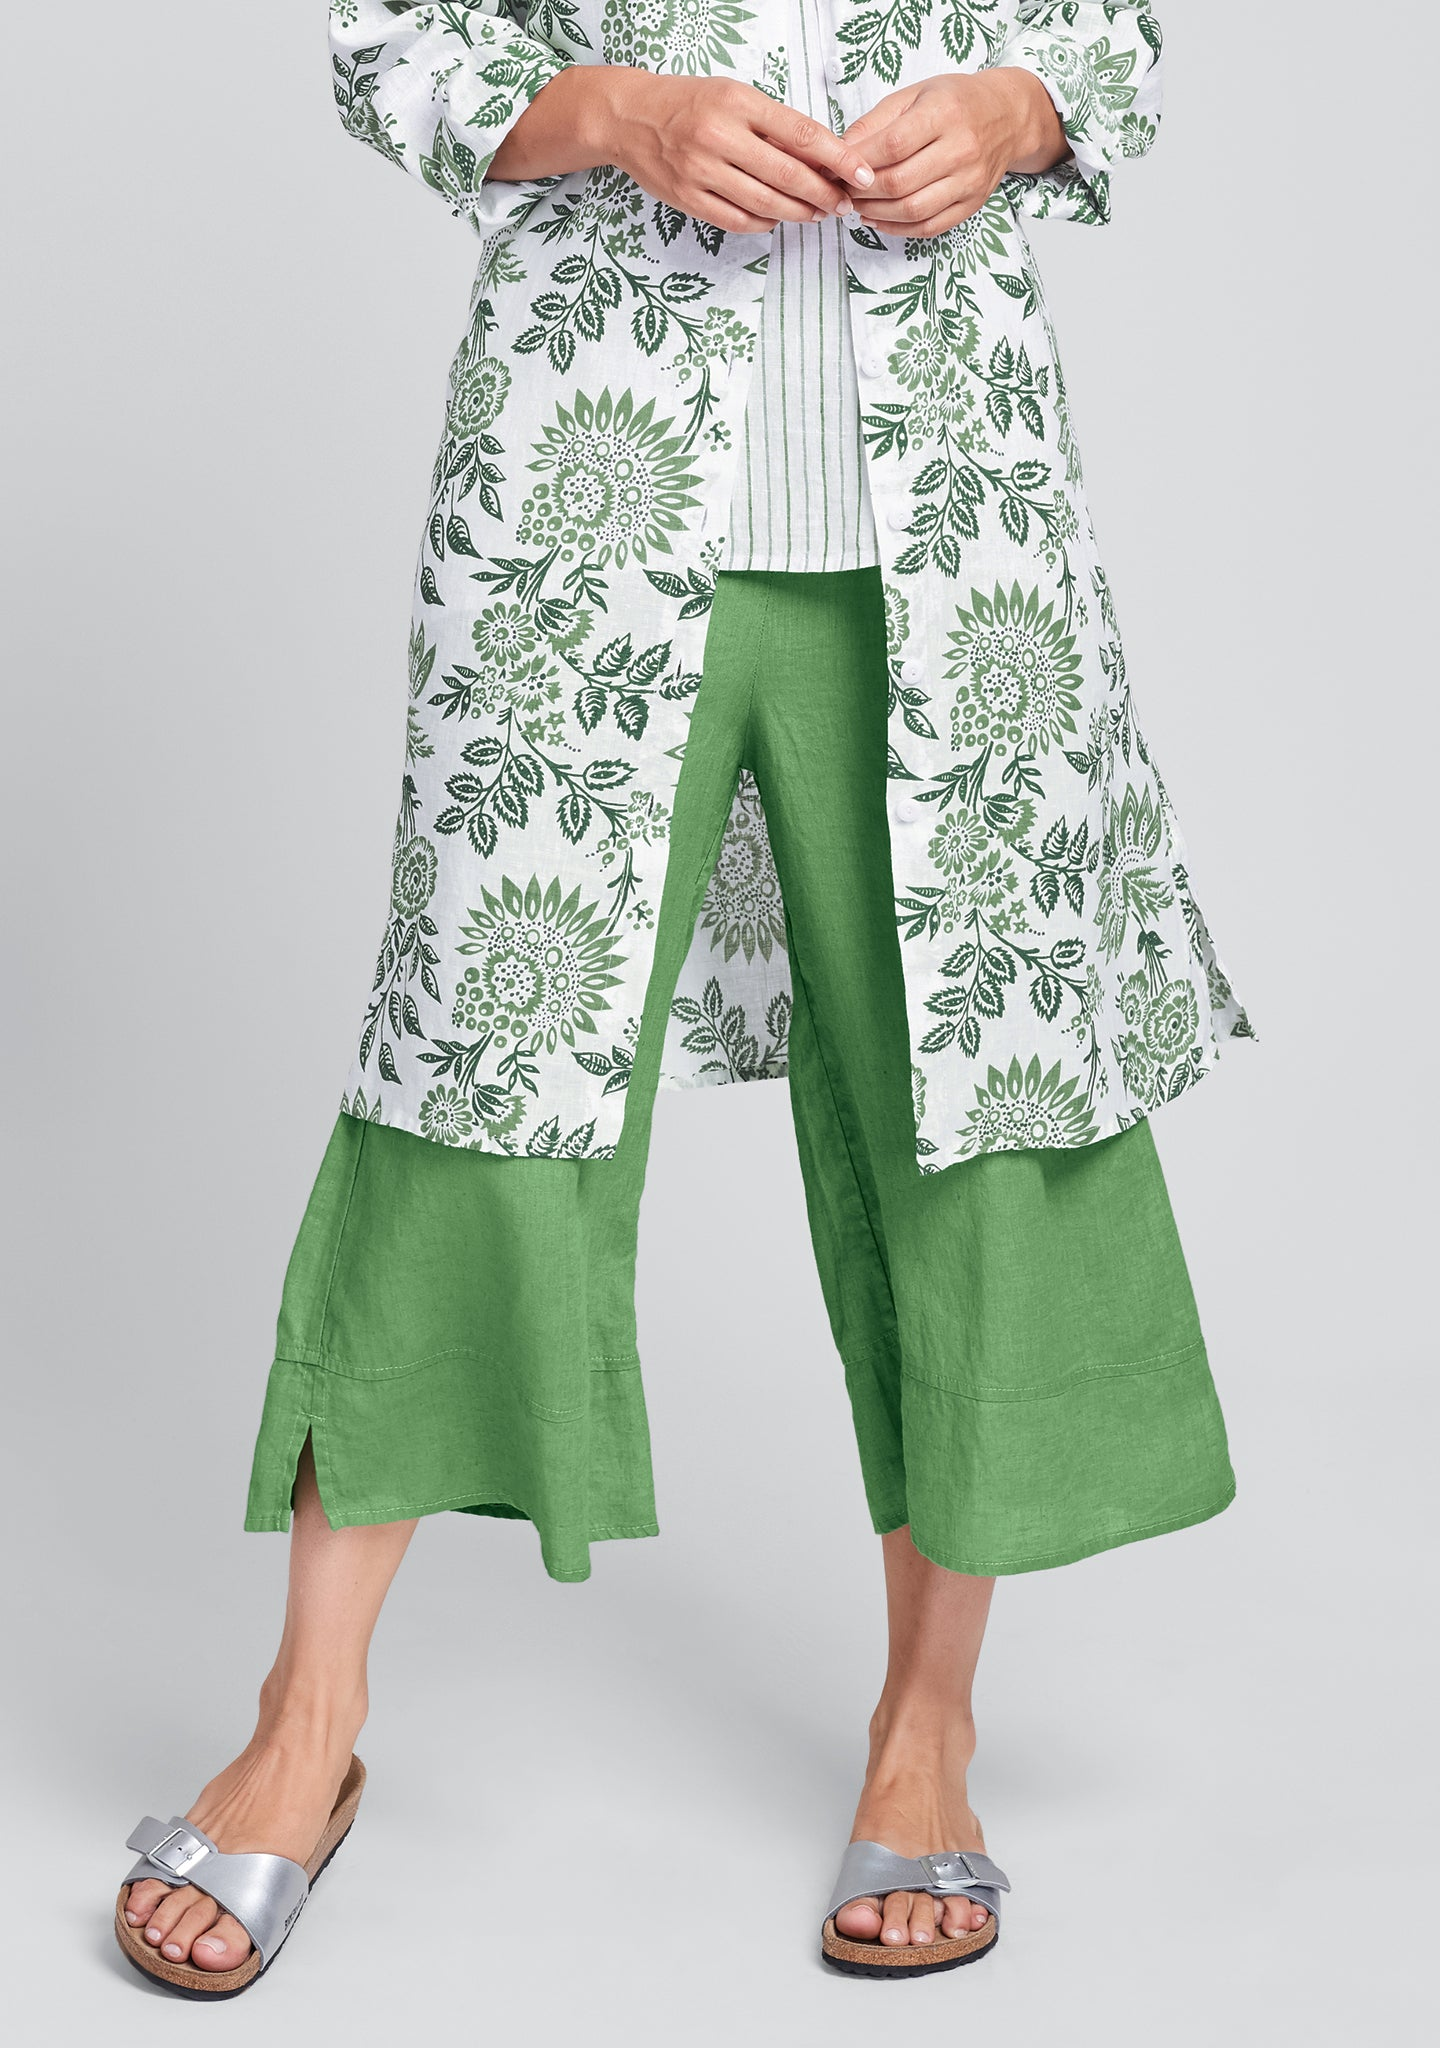 bloom pant linen pants with elastic waist green